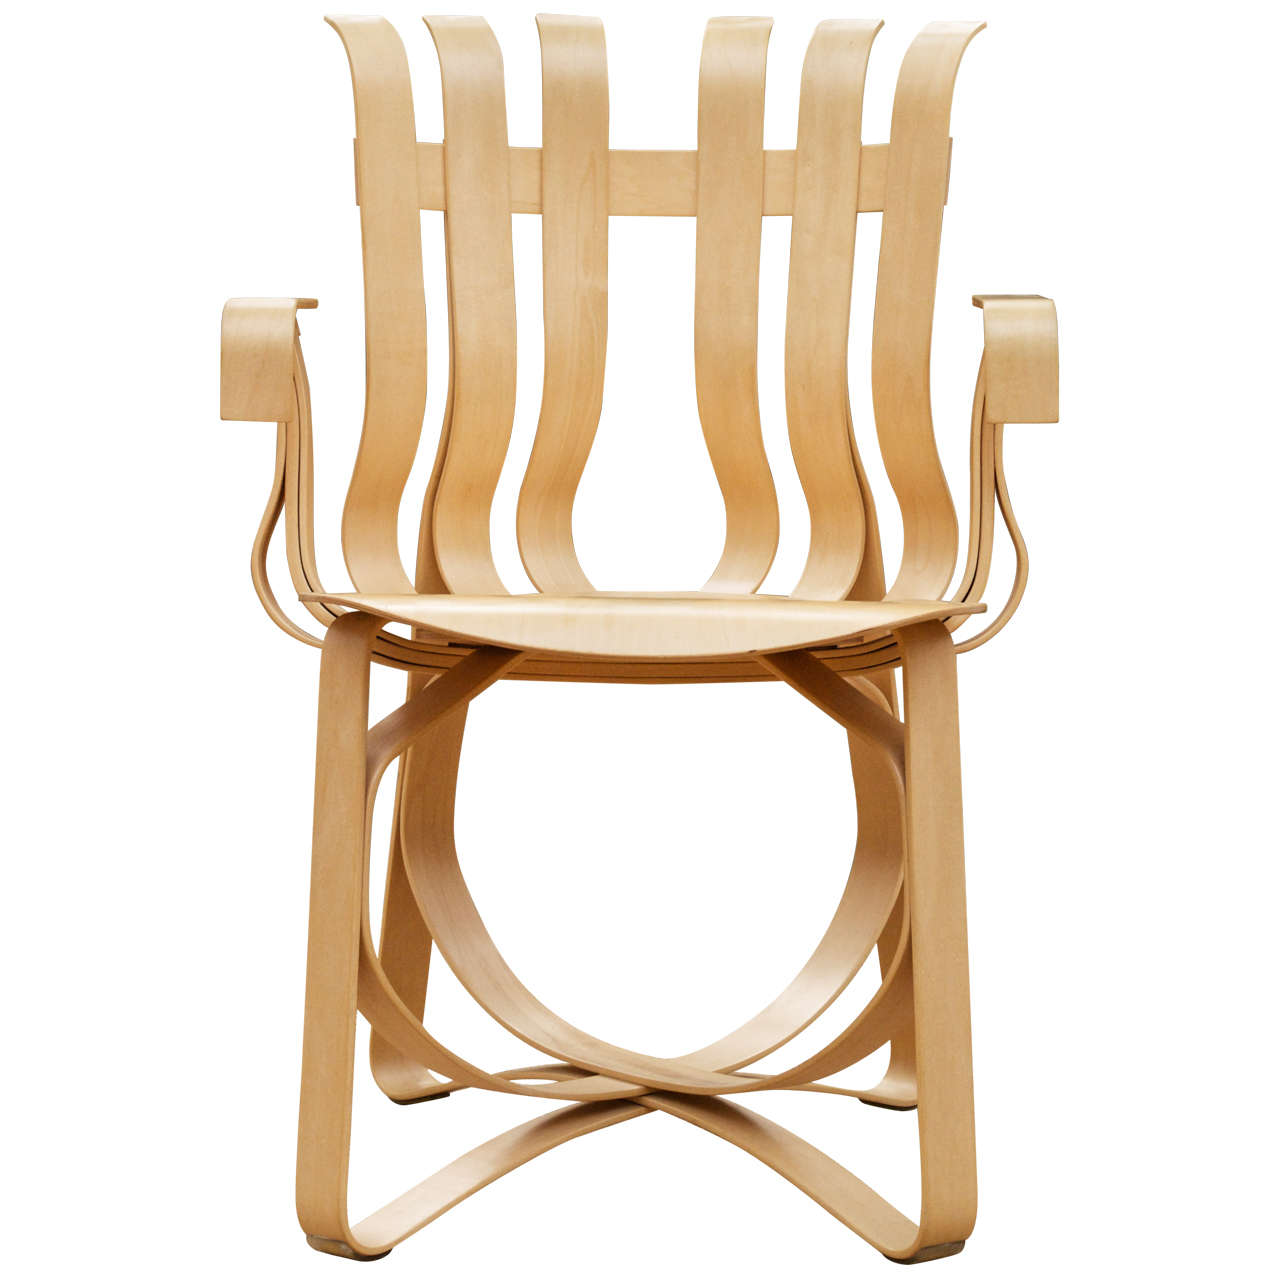 Frank Gehry Hat Trick arm chair for Knoll, 1998